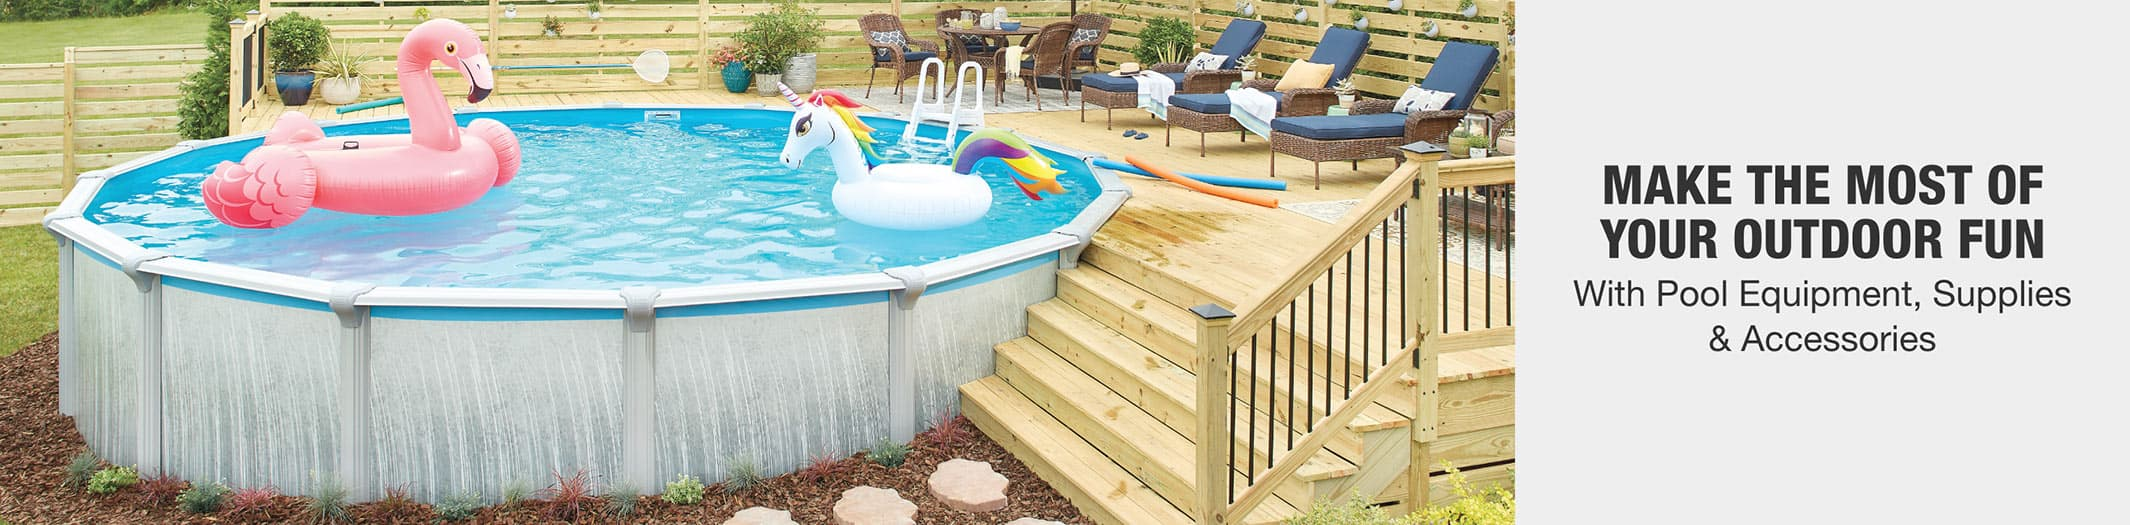 MAKE THE MOST OF YOUR OUTDOOR FUN - With Pool Equipment, Supplies & Accessories